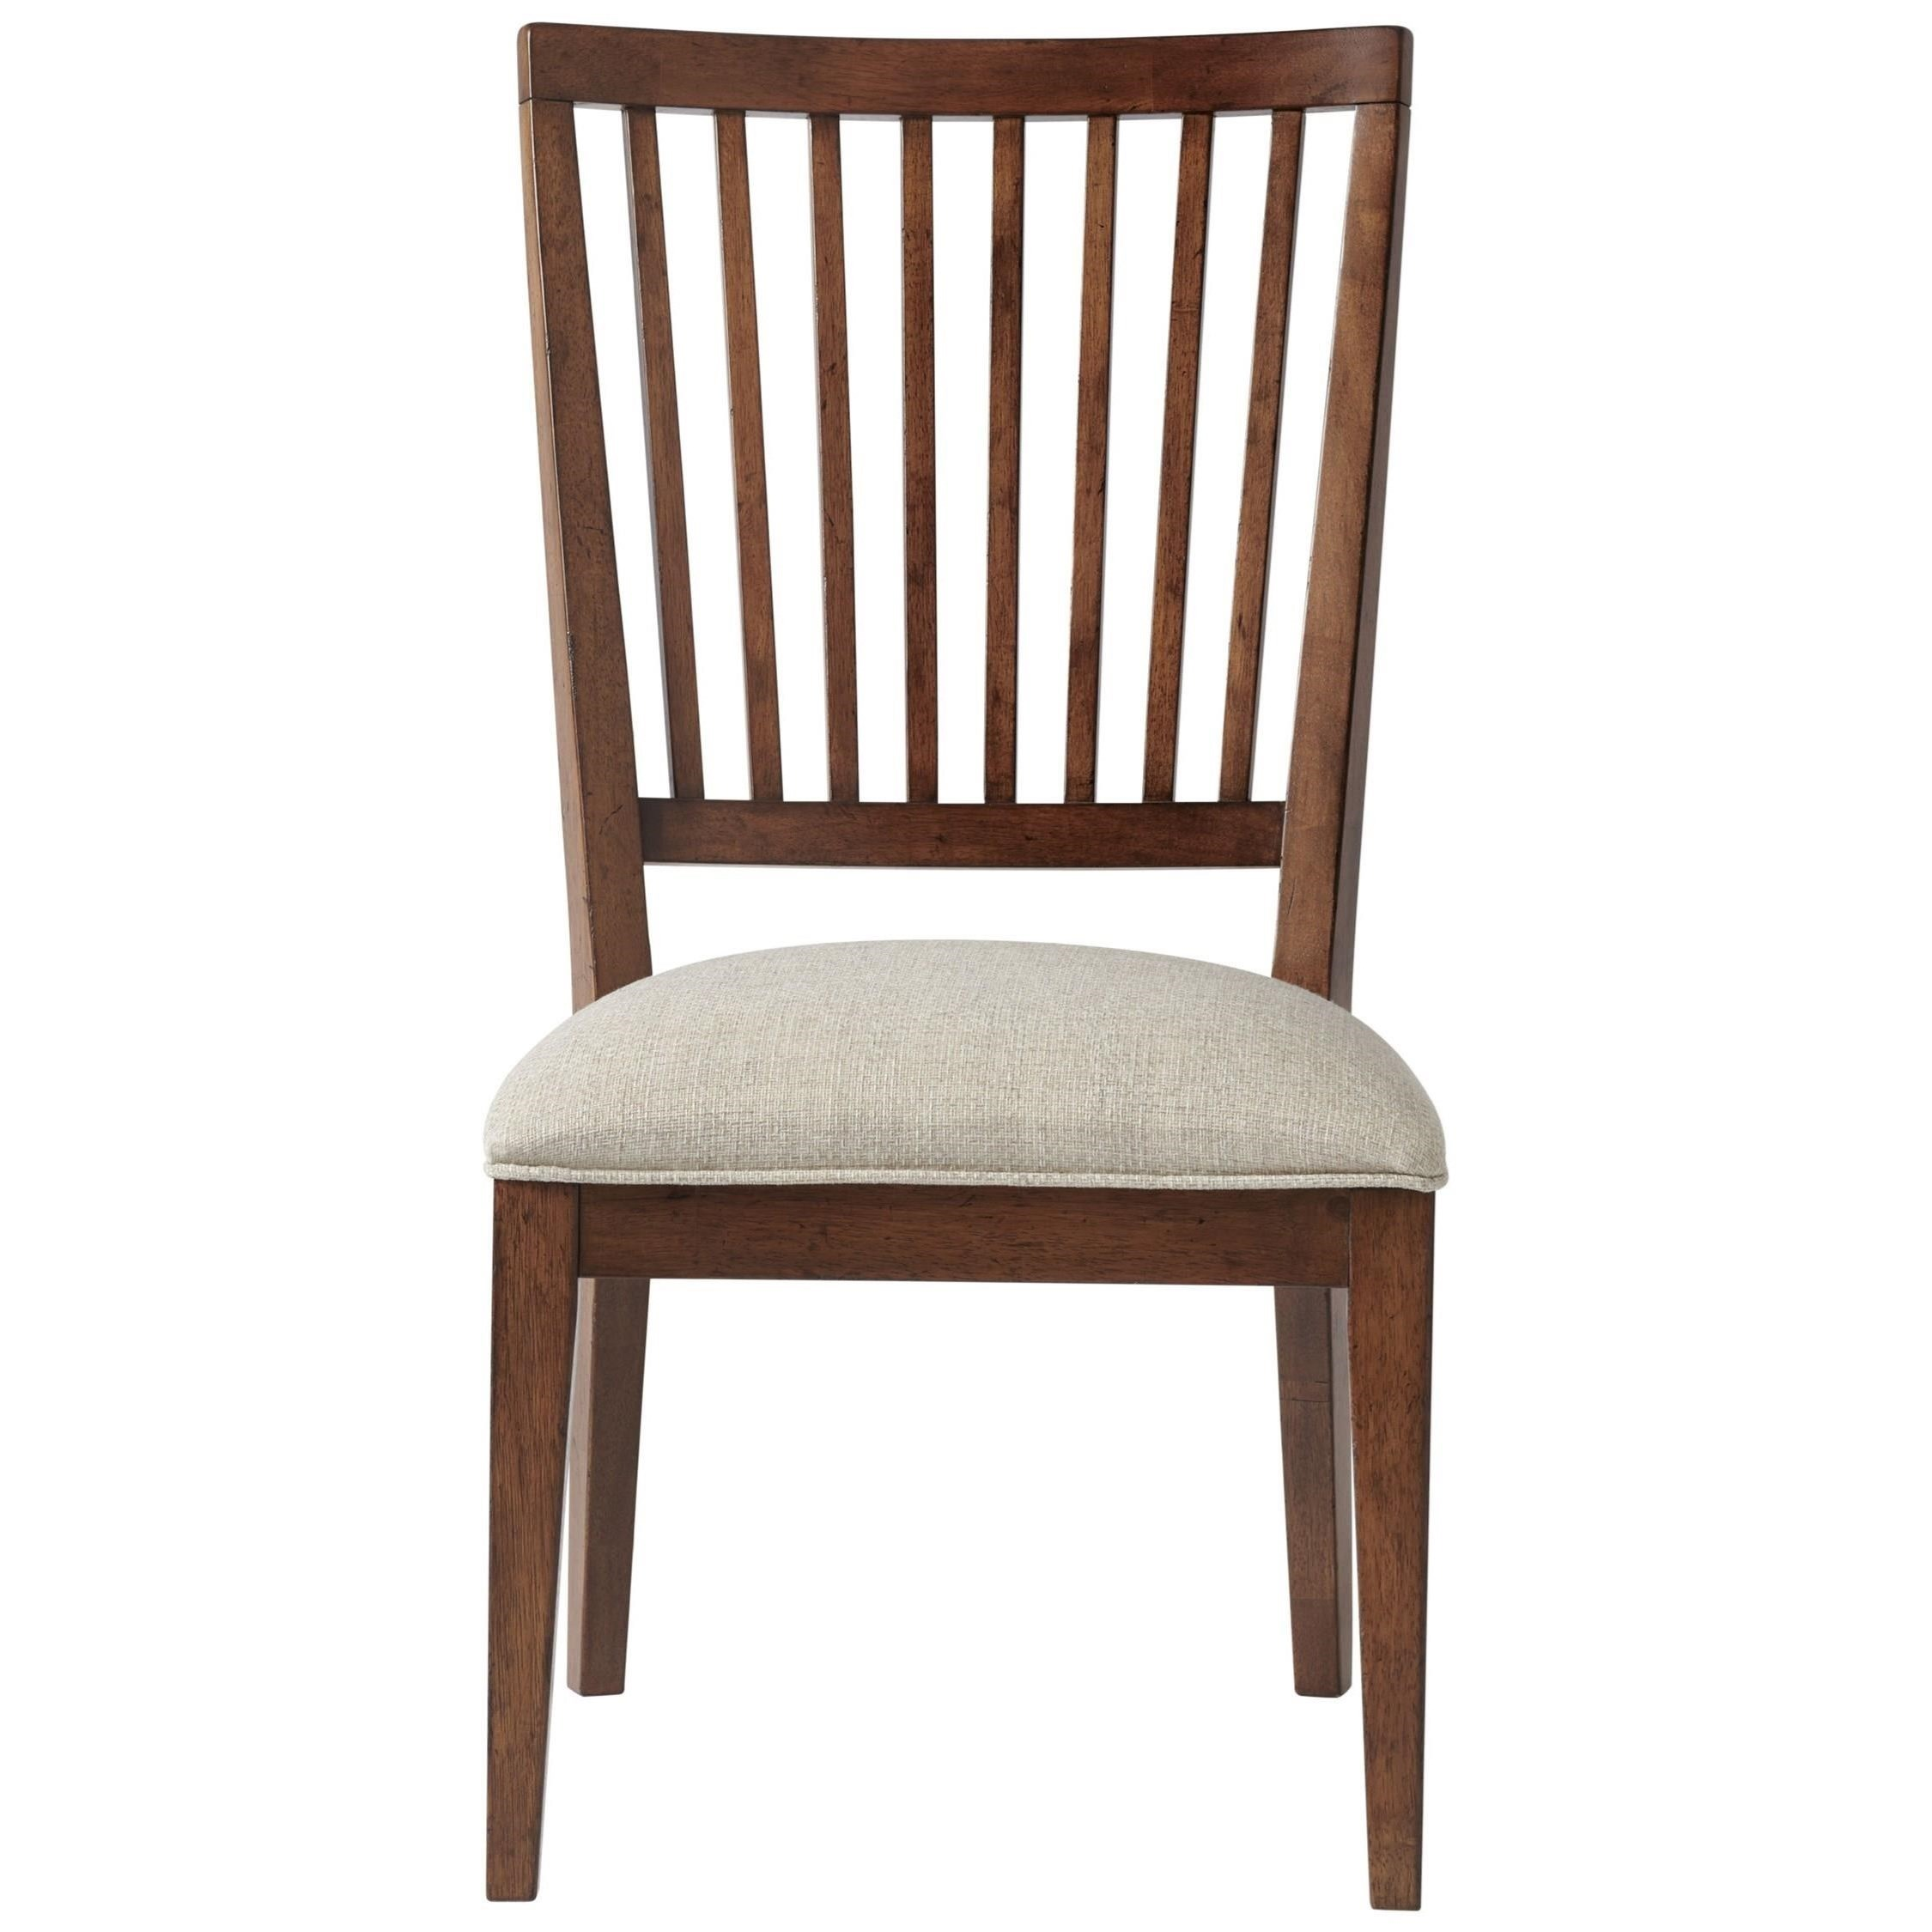 Traditions Dining Chair by Universal at Baer's Furniture